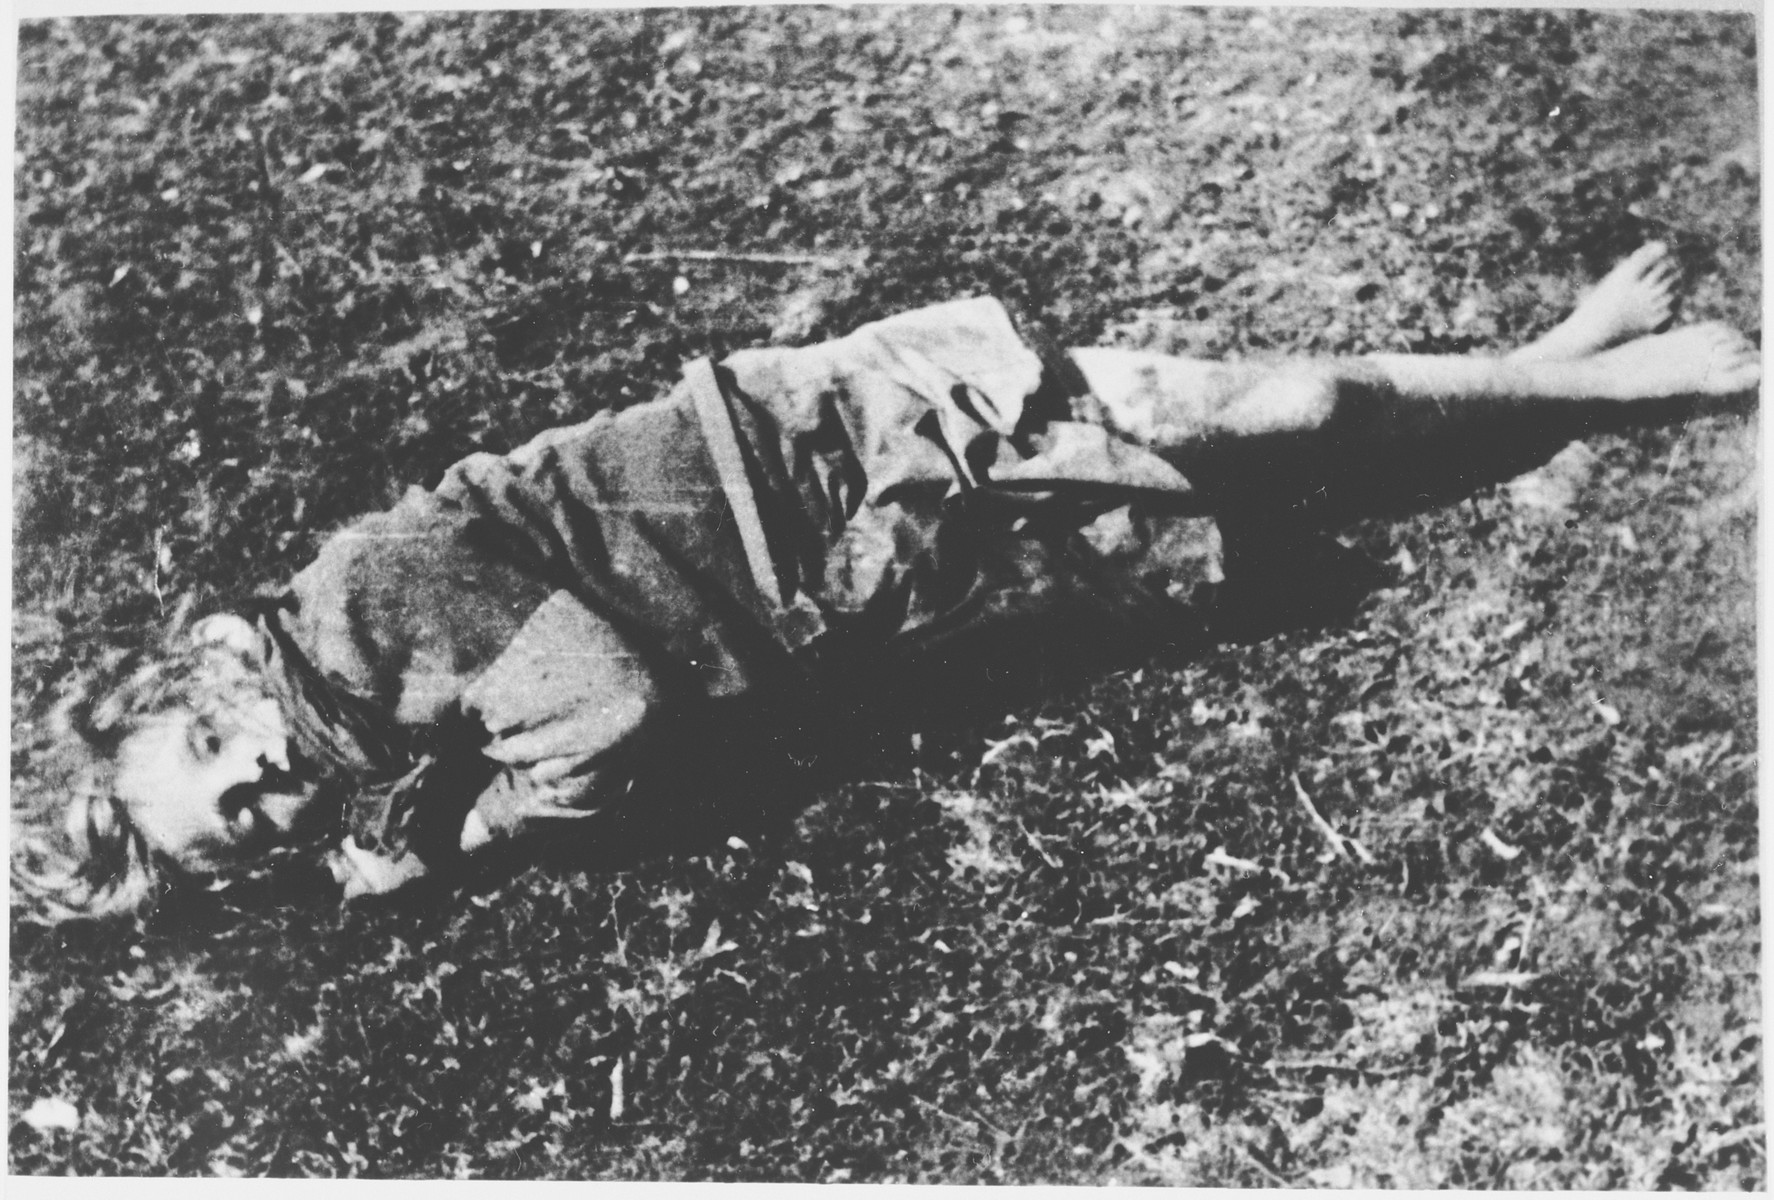 The body of a little girl lies on the ground at the Gradina execution site near the Jasenovac concentration camp.